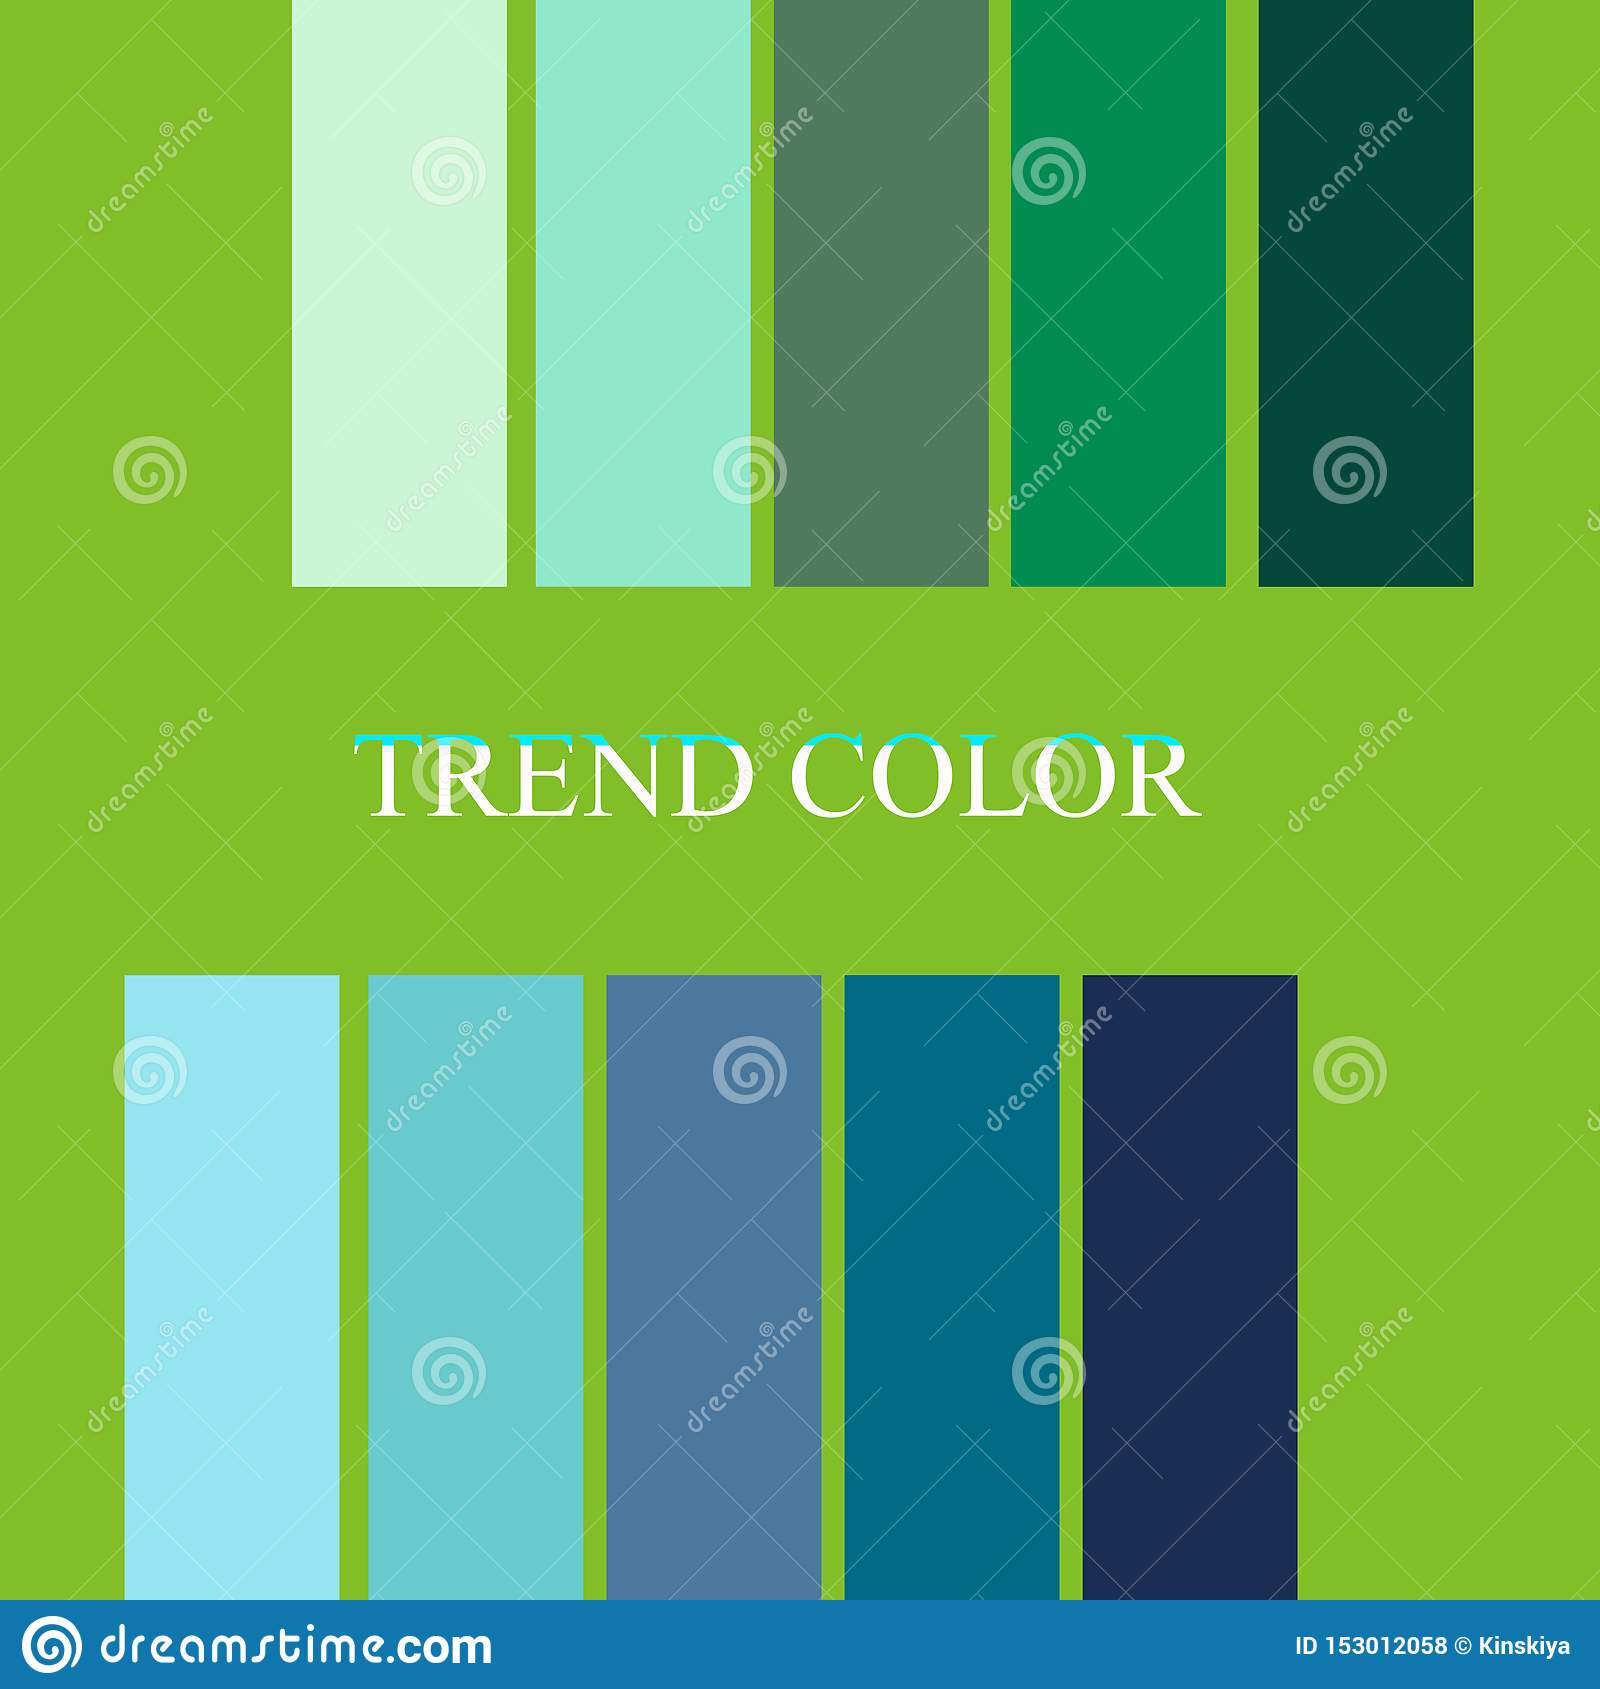 Fashion Color Palettes Trend 2019 Year Stock Illustration Illustration Of Graphic Illustration 153012058